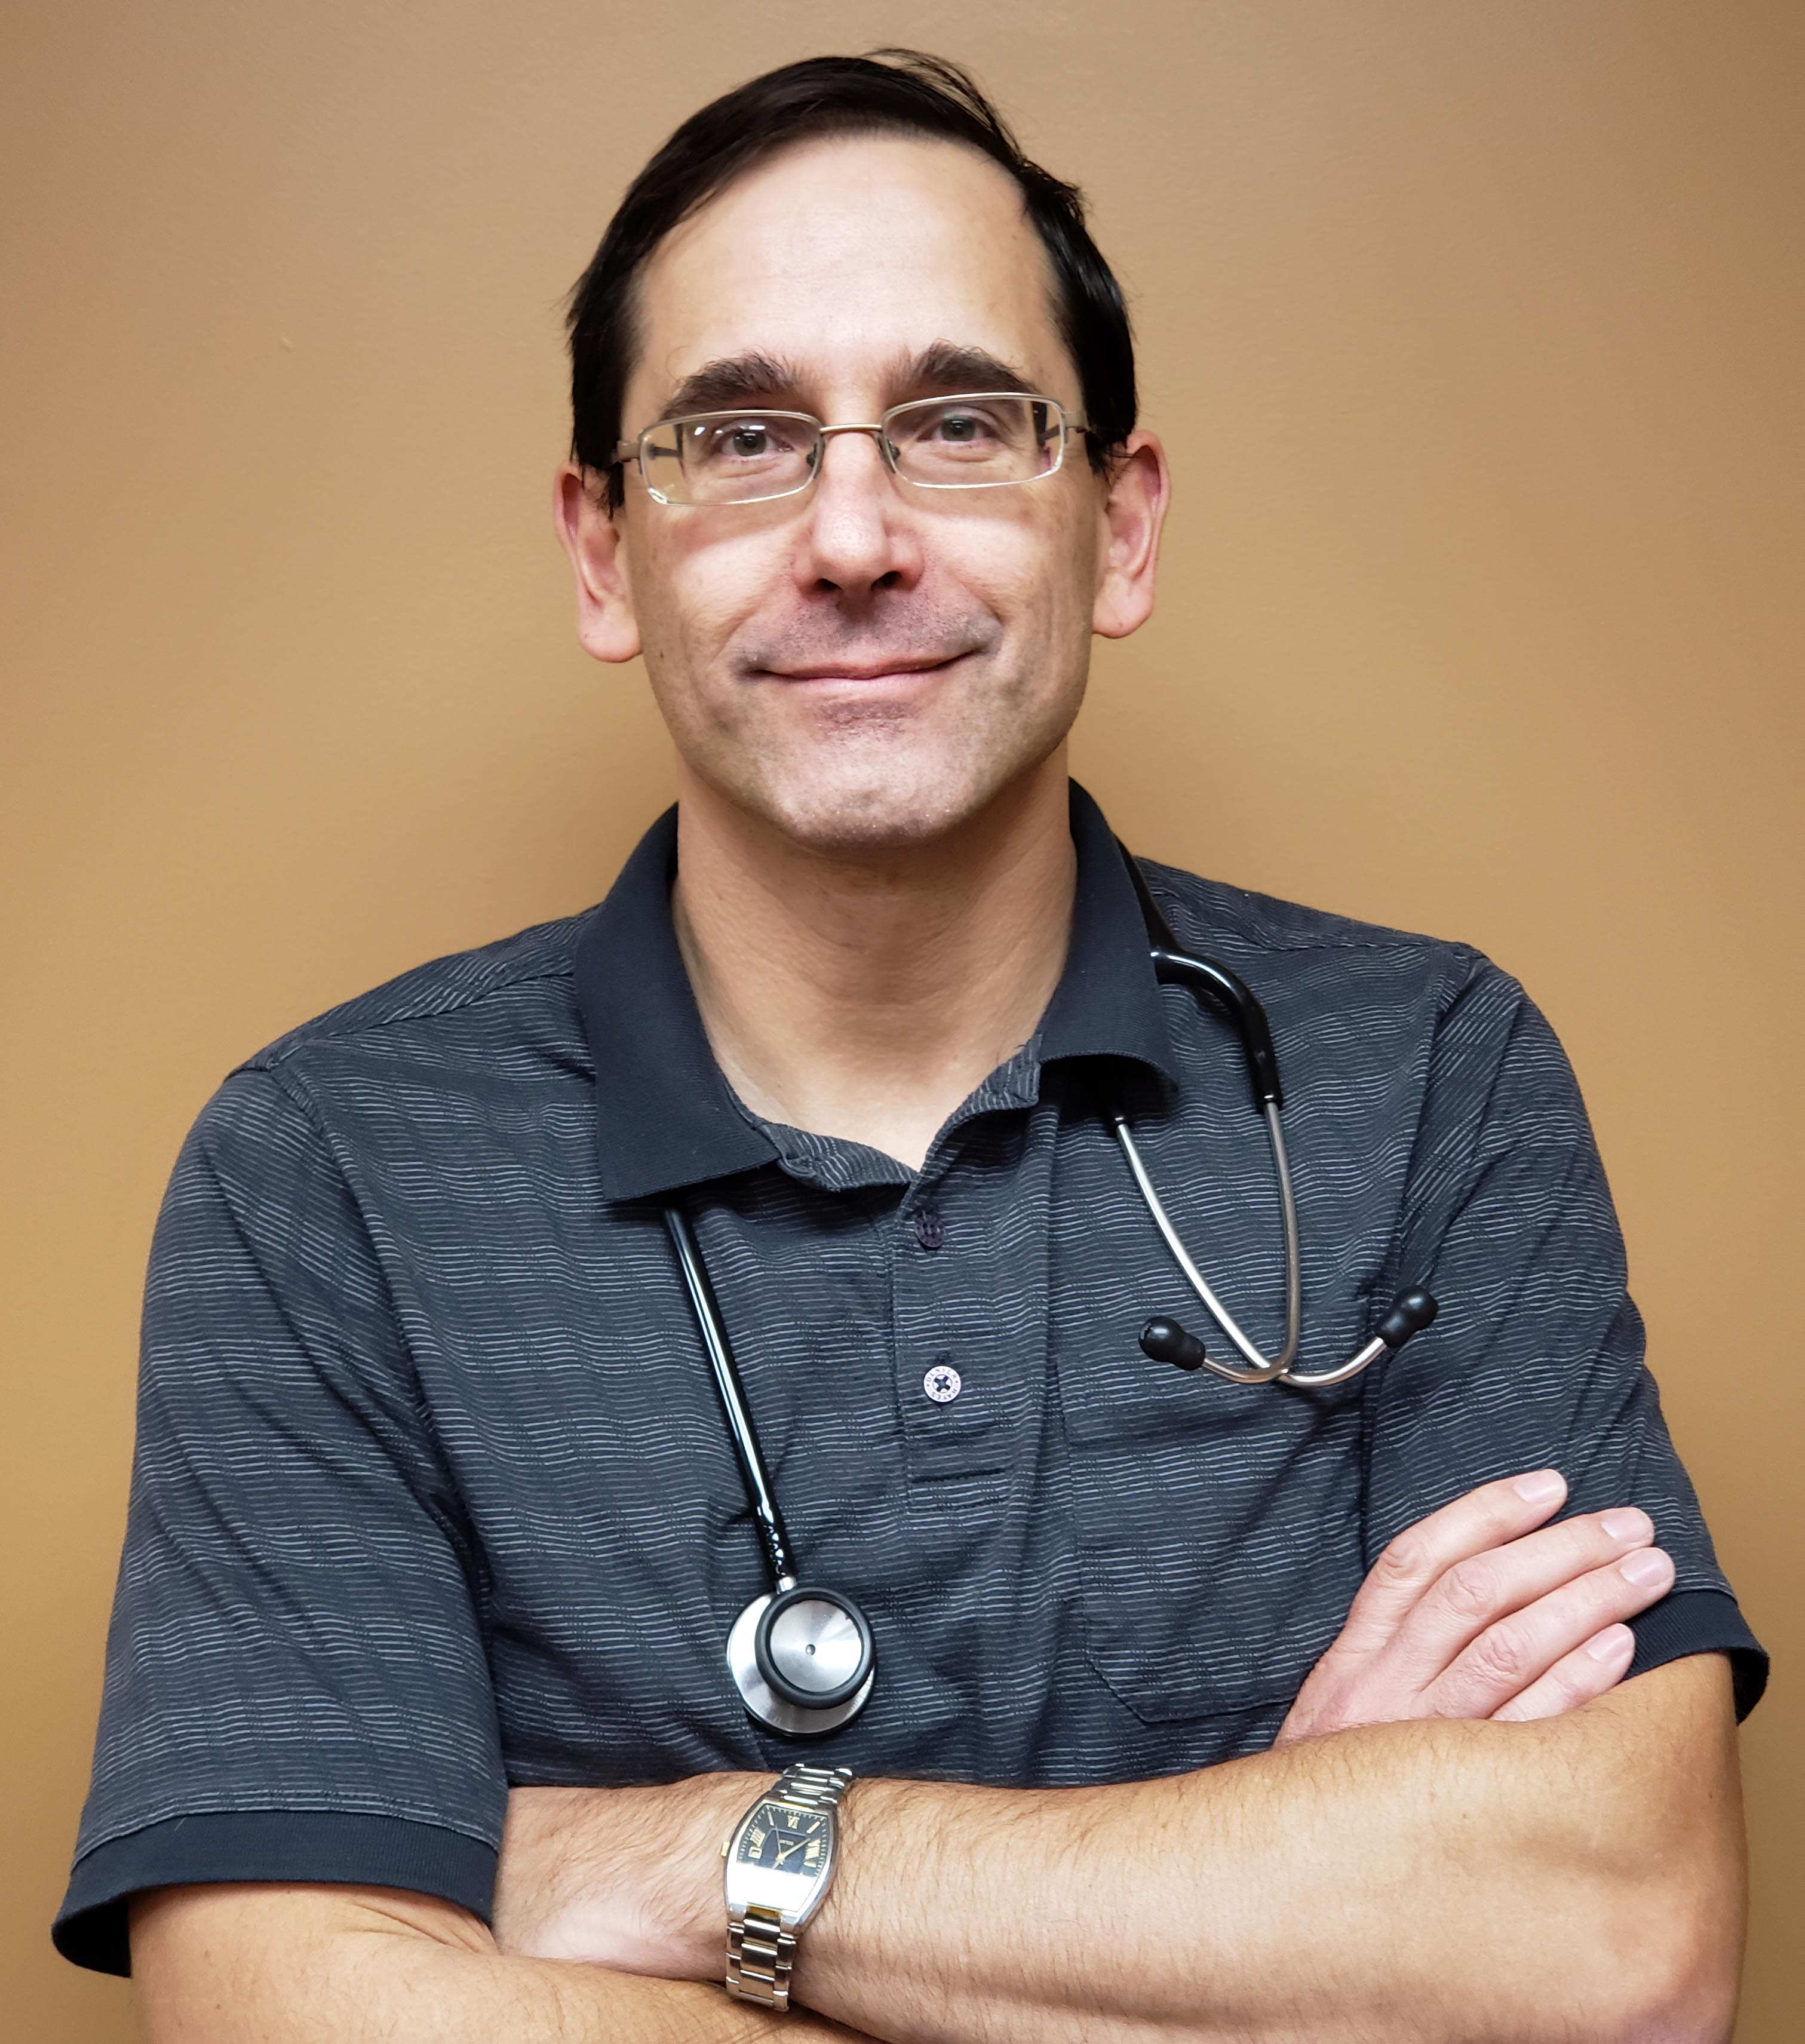 Dr. Kendall